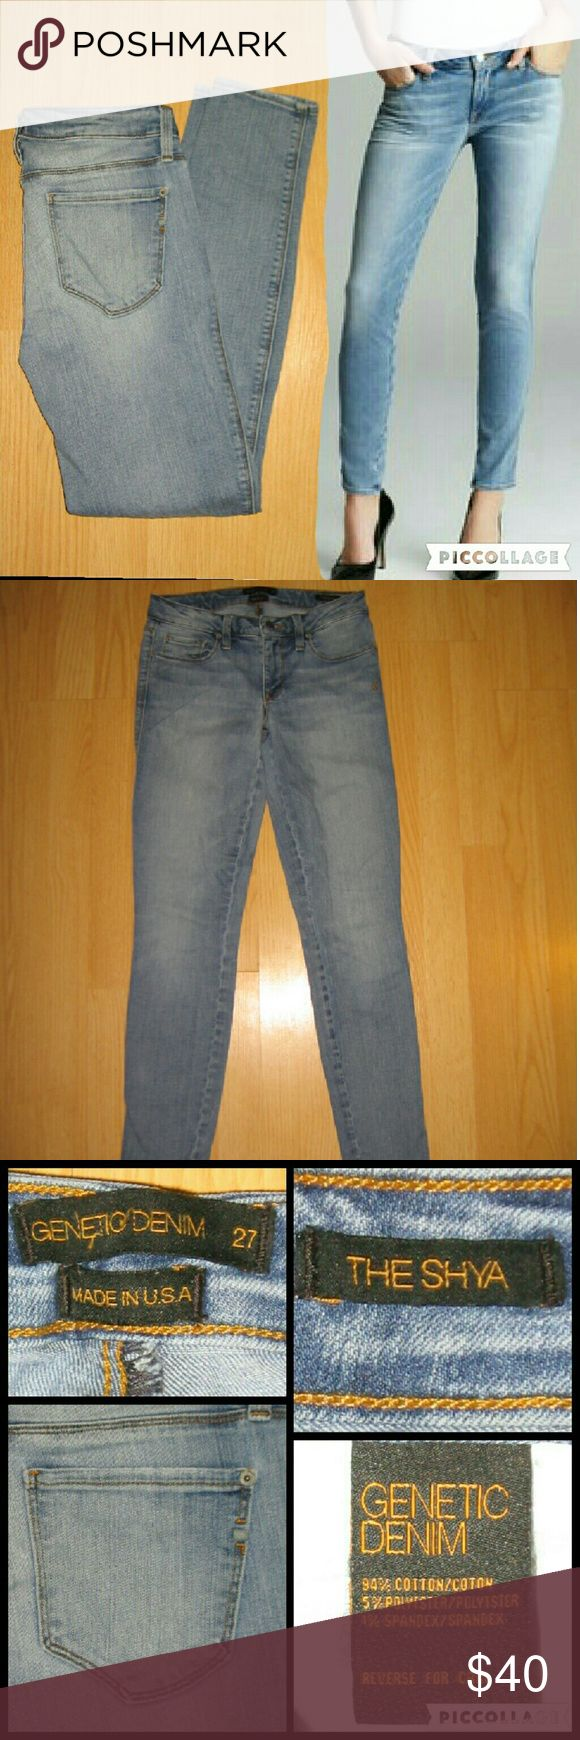 """Genetic Denim Shya Skinny Jeans in Cambridge These jeans are preloved but still in very good condition. They are the Shya Cigarette Skinny jean in Cambridge wash. Made of 94% cotton 5% polyester 1% spandex. Tag size is 27.  Waist across with natural dip is 14"""" Waist across when aligned is 14.5"""" Front Rise is 7.5"""" Inseam is 29.5"""" Genetic Denim Jeans Skinny"""